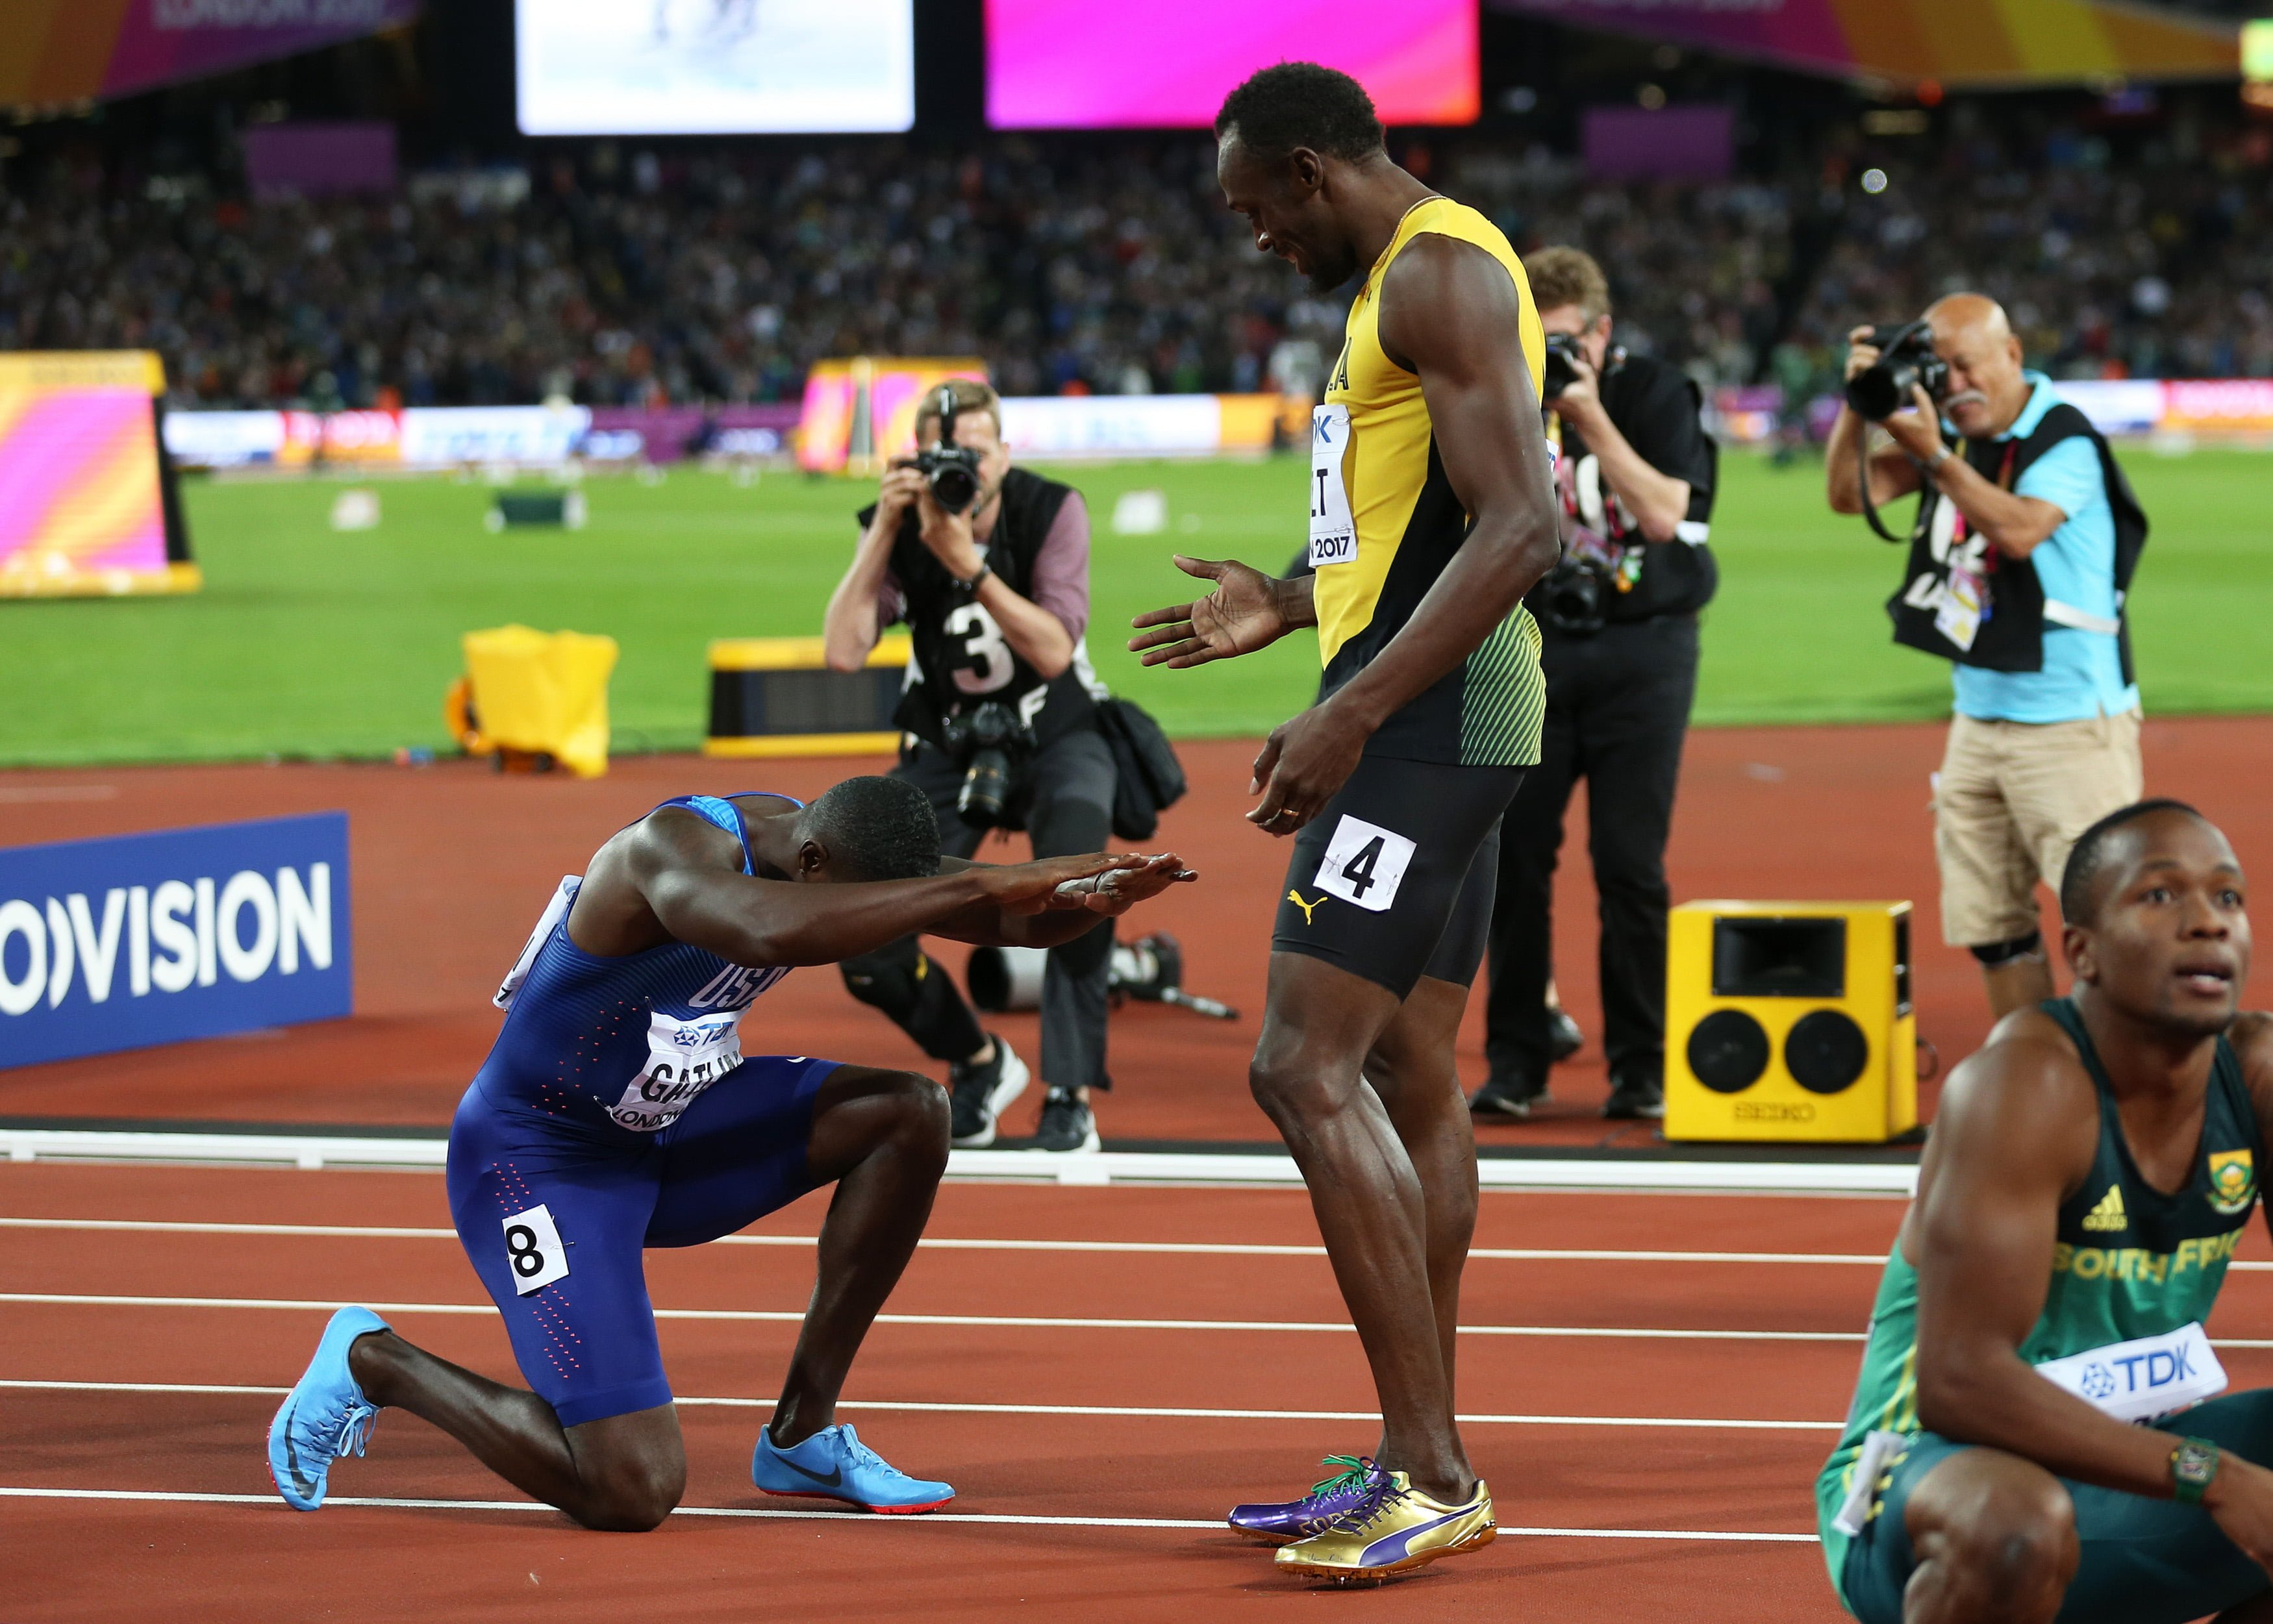 August 5th 2017, London Stadium, East London, England; IAAF World Championships; Day 2; Justin Gatlin of USA bows down to Usain Bolt of Jamaica in respect to the Jamaican runner after the American beats Usain Bolt of Jamaica to be crowned champion of the men's 100 metres final ***** 2017.08.05, Mistrzostwa swiata w lekkiej atletyce fot. John Patrick Fletcher / Actionplus / Foto Olimpik / POLAND ONLY !!! --- Newspix.pl *** Local Caption *** www.newspix.pl mail us: info@newspix.pl call us: 0048 022 23 22 222 --- Polish Picture Agency by Ringier Axel Springer Poland